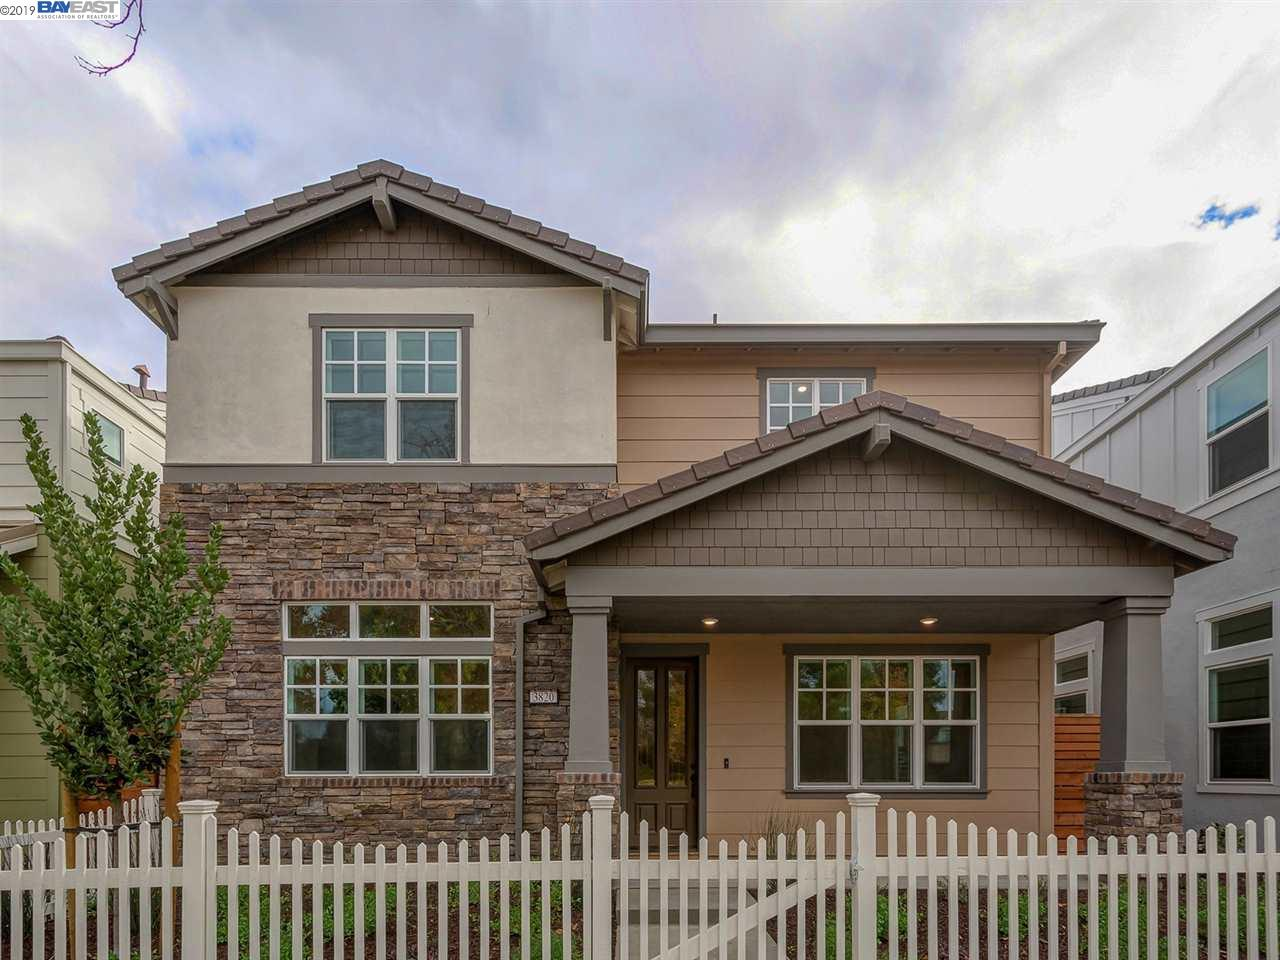 Photo of 3820 Stanley Blvd, PLEASANTON, CA 94566